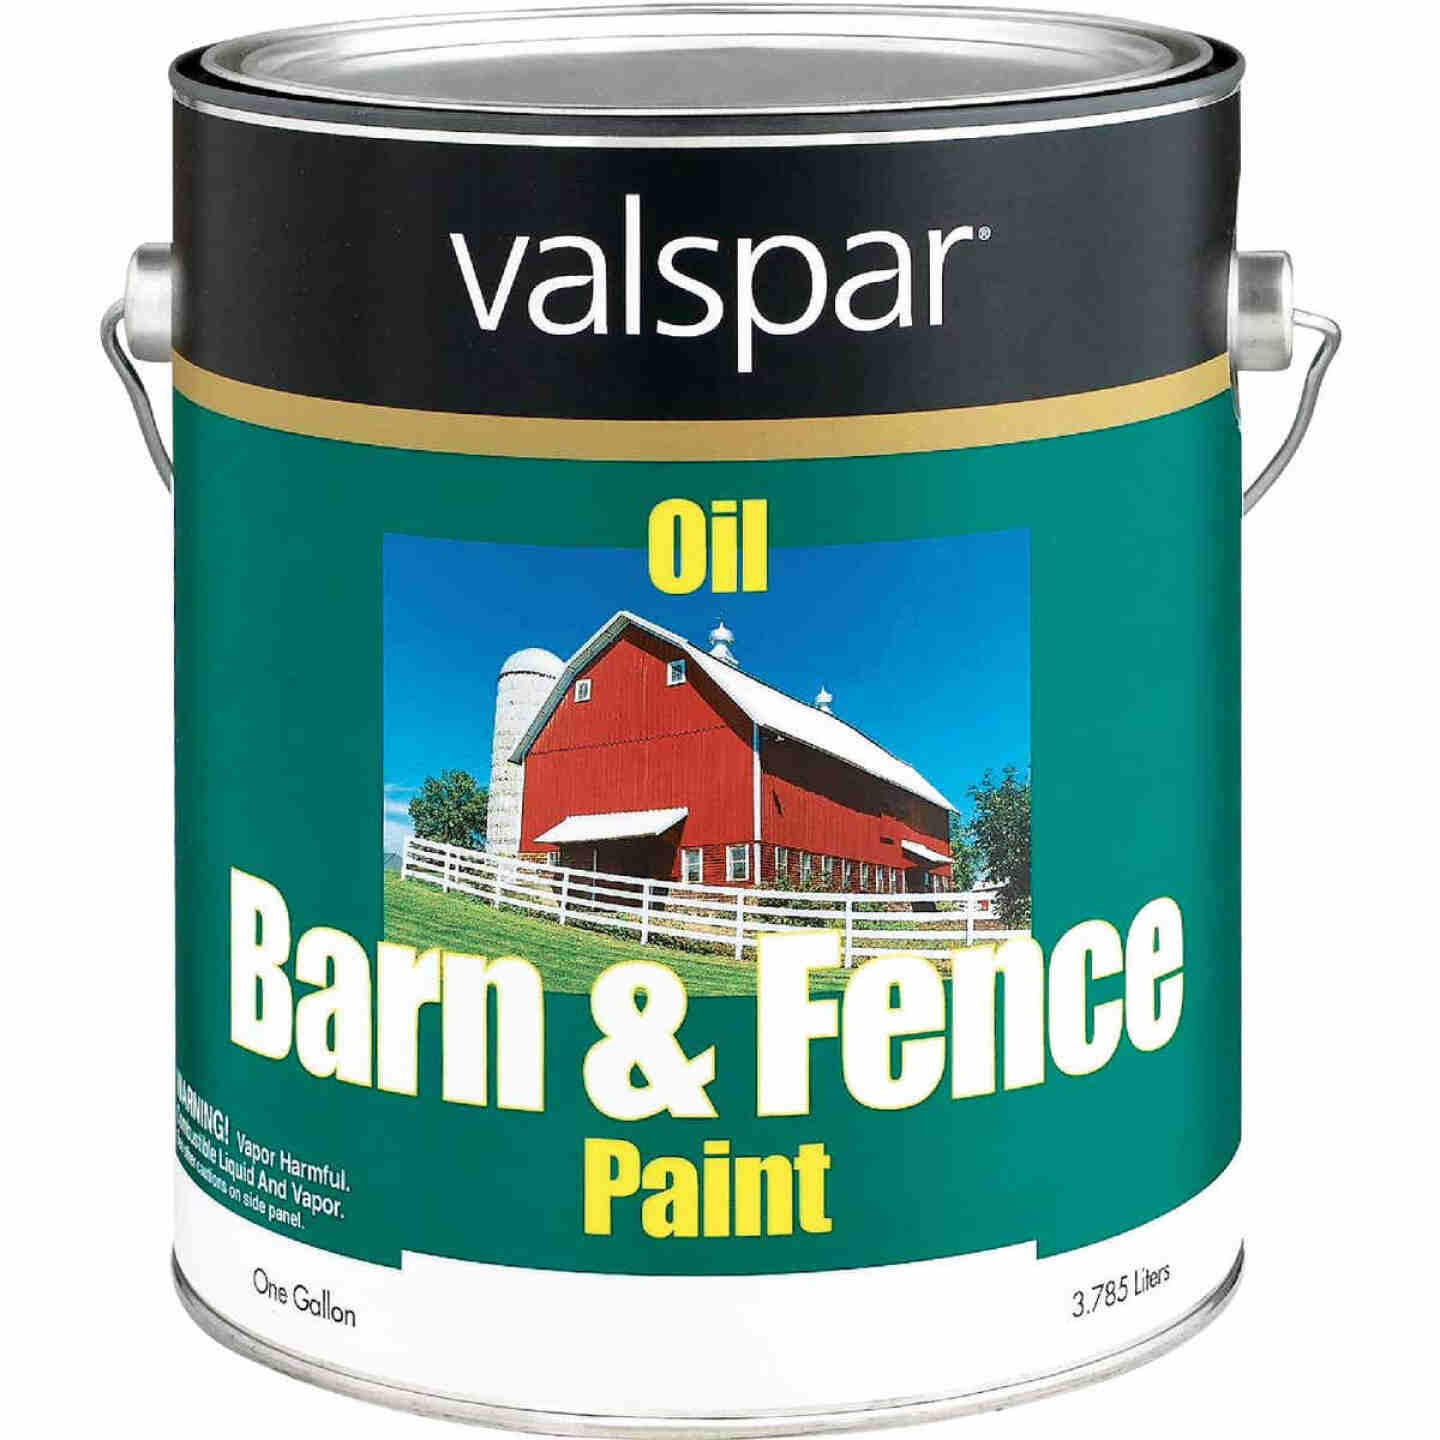 Valspar Oil Paint & Primer In One Low Sheen Barn & Fence Paint, Red, 1 Gal. Image 1